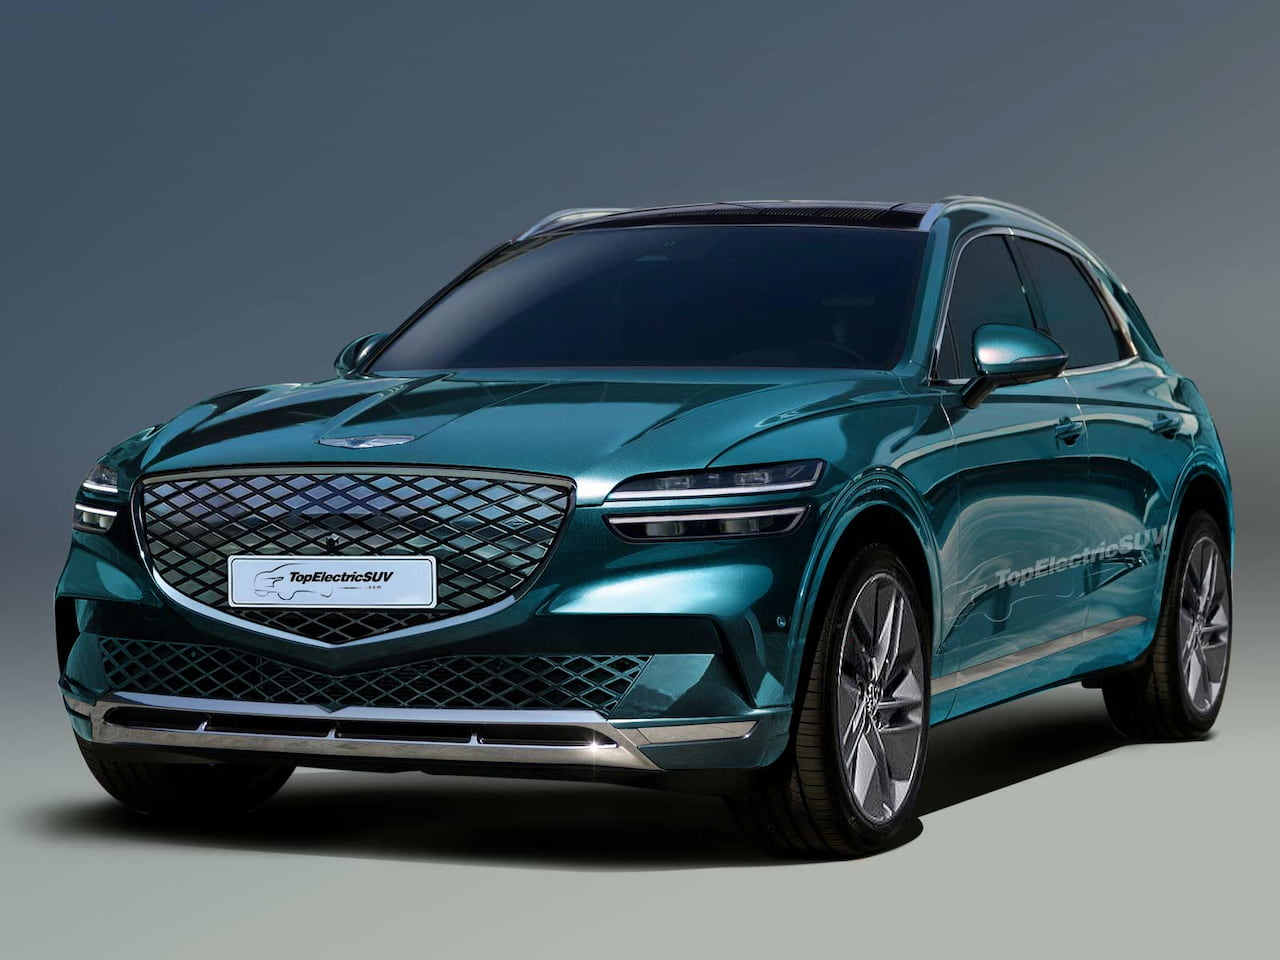 Genesis GV70e or GV70 Electric front rendering